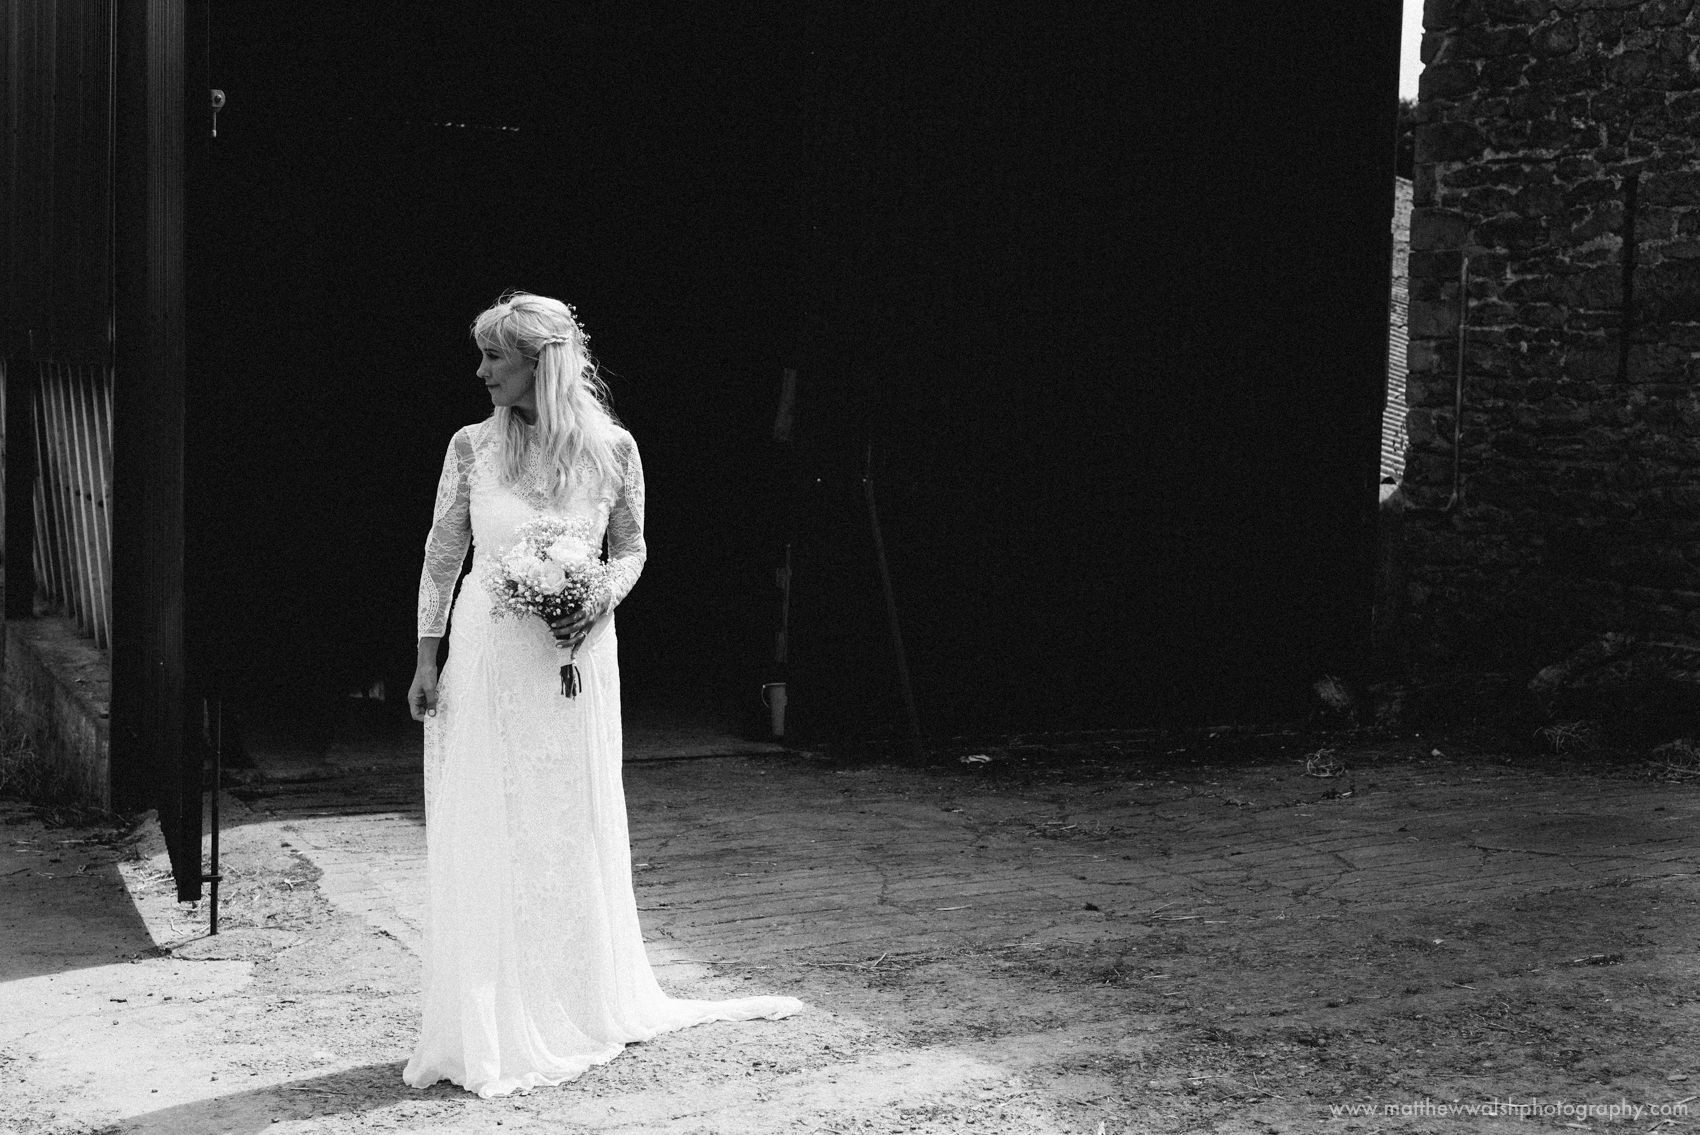 The bride looking elegant and sophisticated in her lace wedding dress, captured in black and white to make the dress really stand out